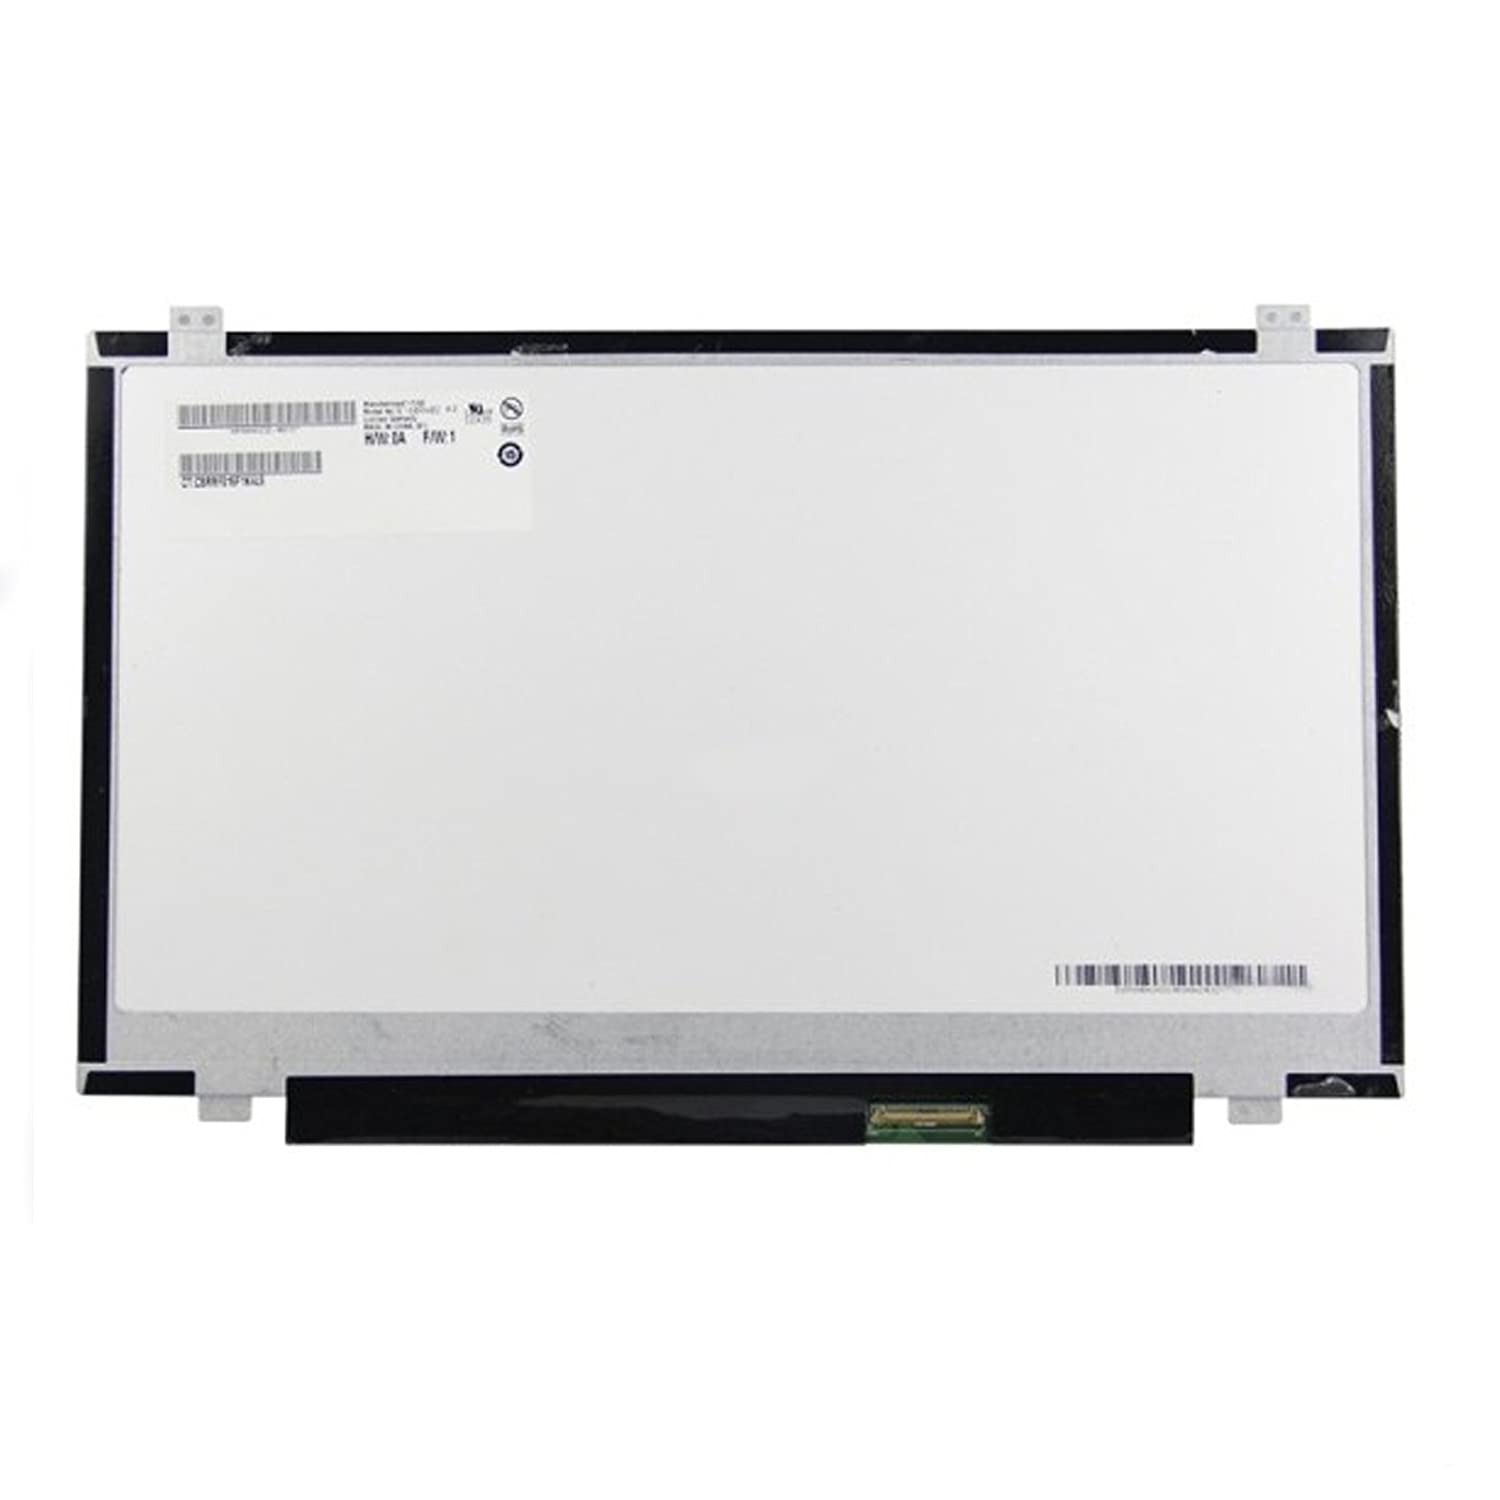 LCDOLED® 14'' 1600x900 LED LCD Screen Display Panel for Lenovo Thinkpad  T420 T420i T420s